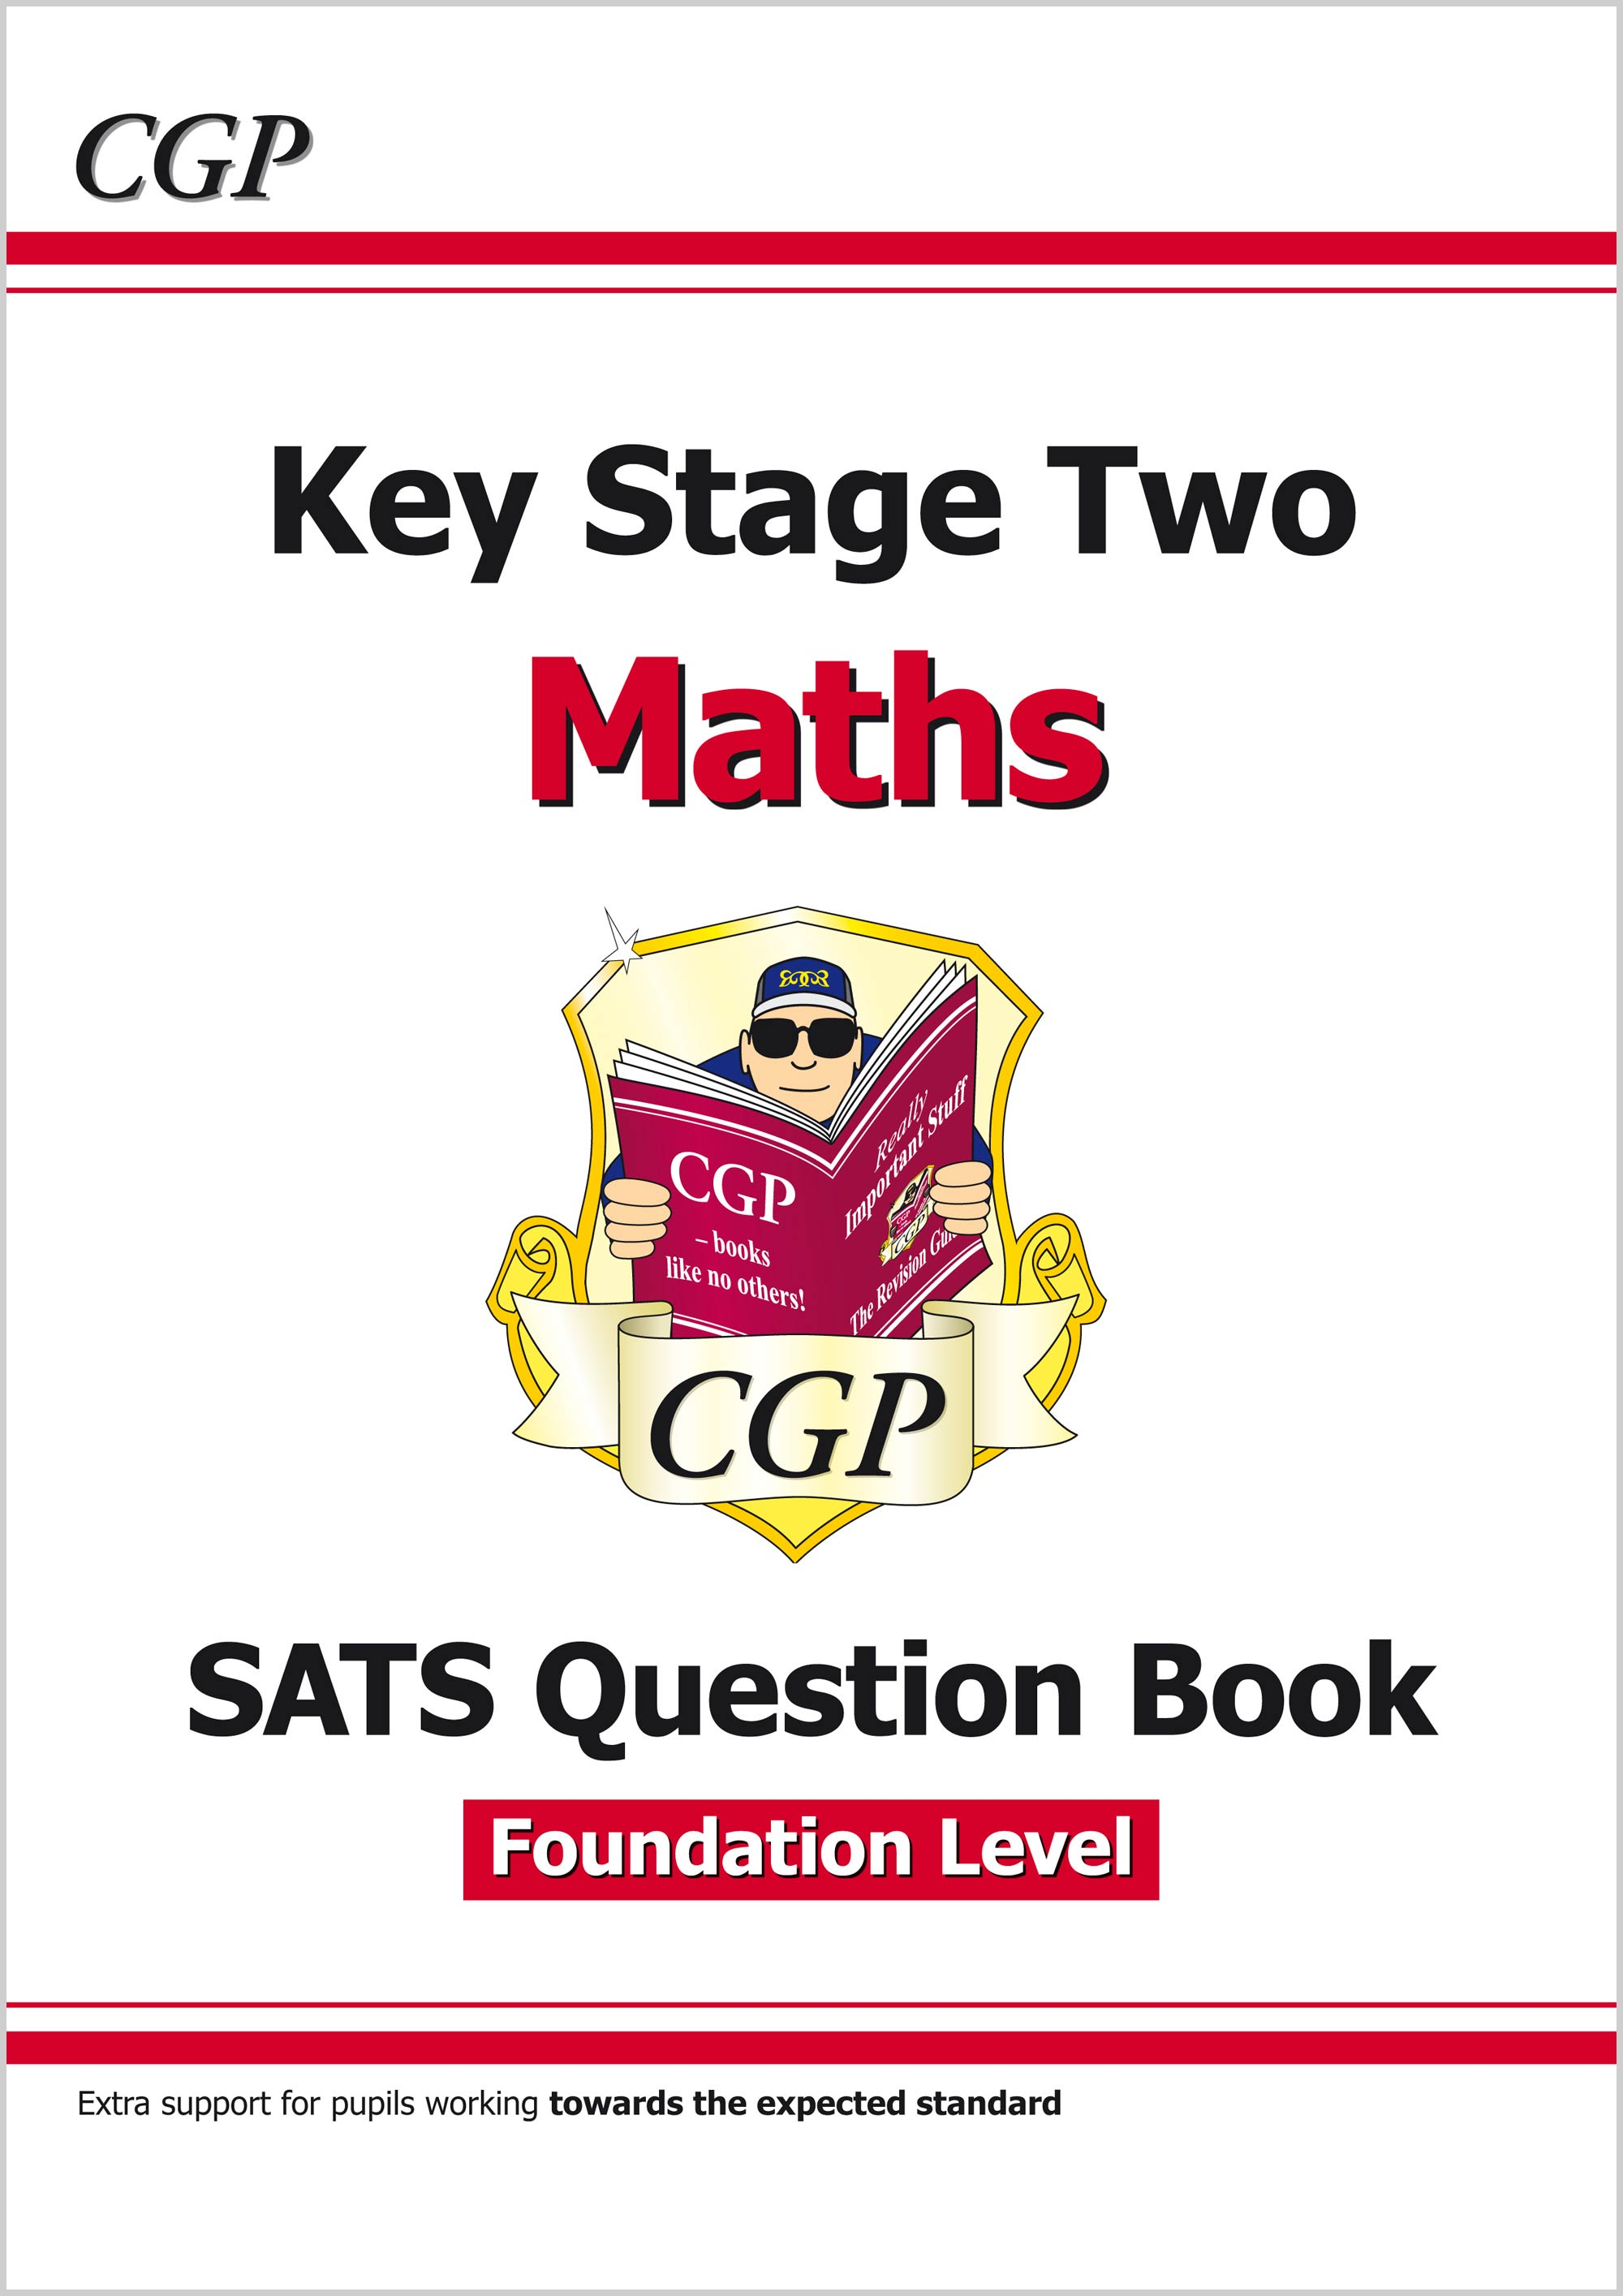 MLBW22 - KS2 Maths Targeted SATS Question Book - Foundation Level (for the 2019 tests)